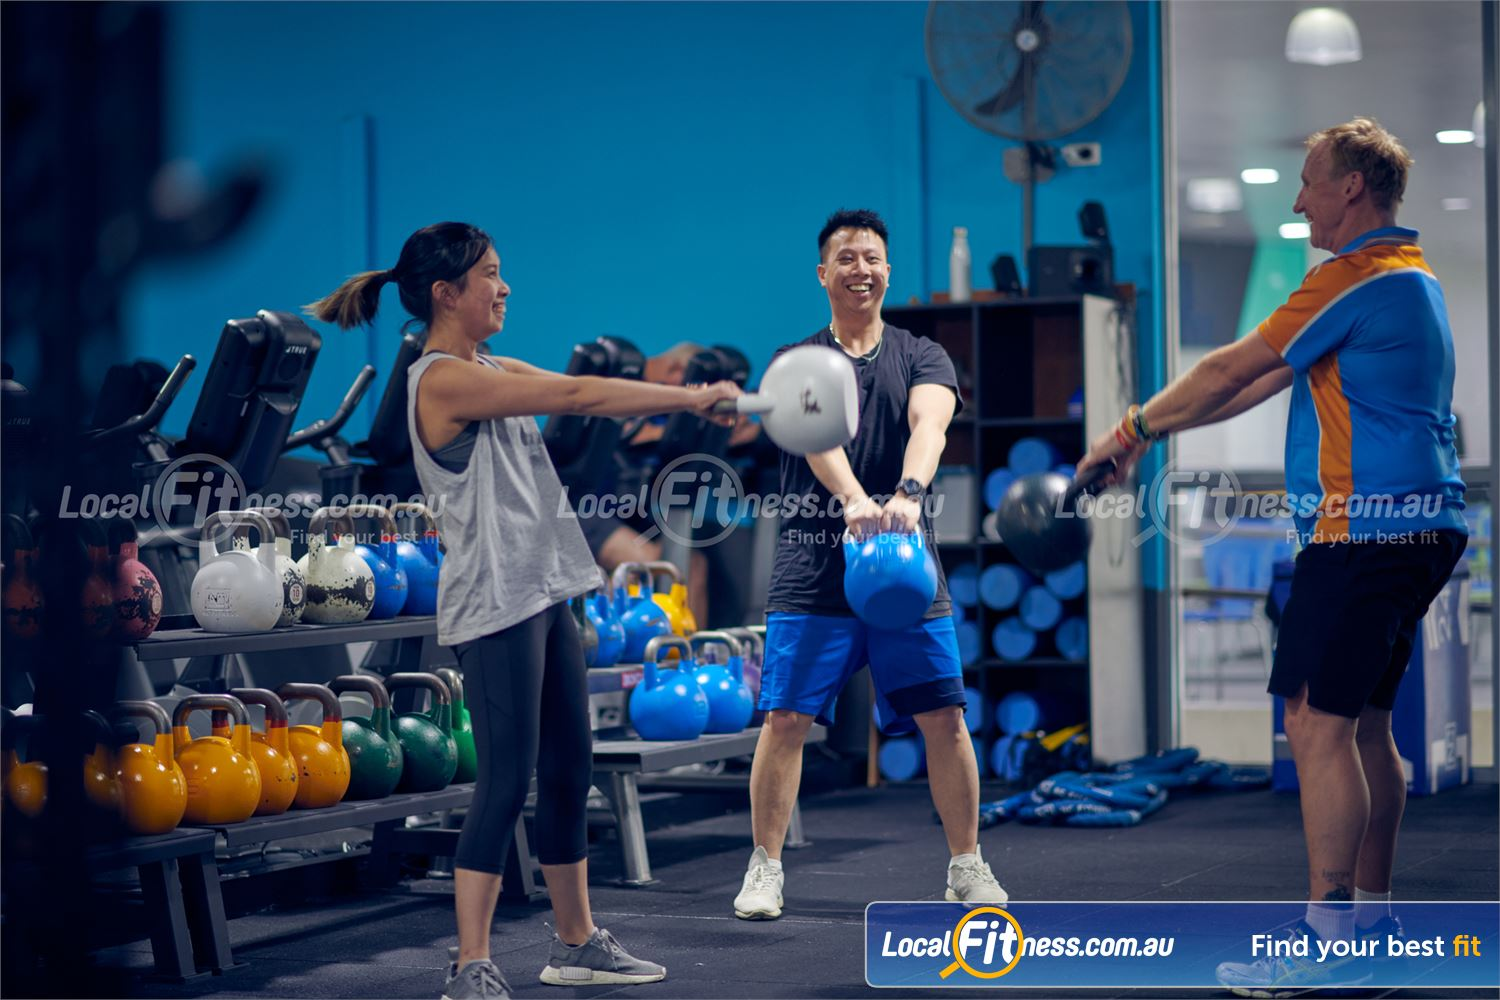 Knox Leisureworks Near Ferntree Gully Learn the fundamentals of  kettlebell training in our Boronia HIIT classes.